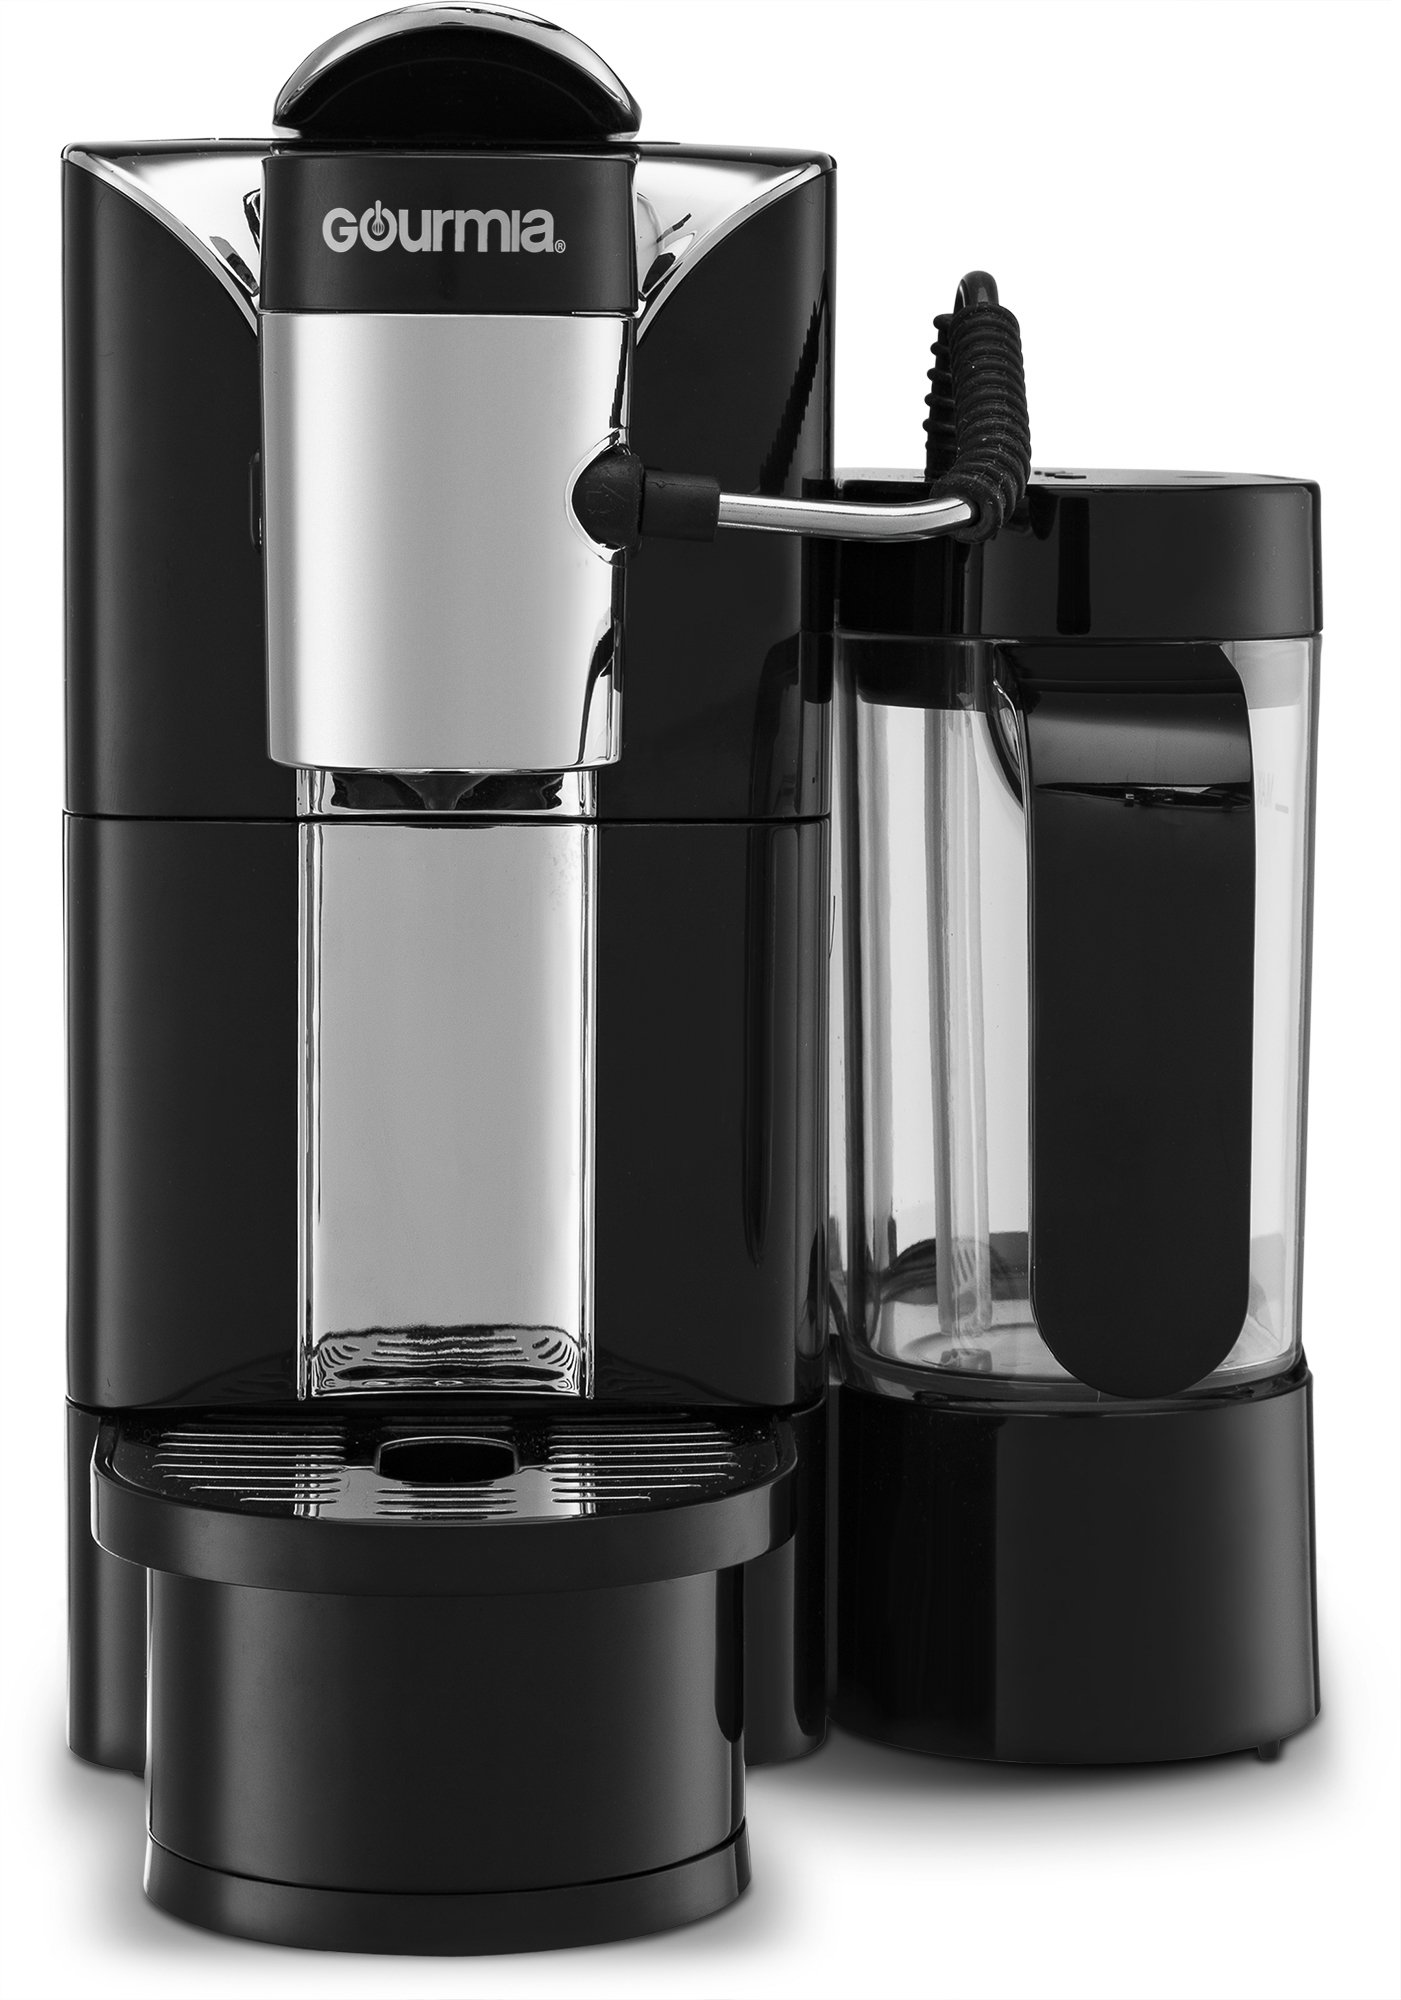 Gourmia GCM5500 - One Touch Automatic Espresso Cappuccino & Latte Maker Coffee Machine - Brew, Froth Milk, and Mix Into Cup with the Push of One Button- Nespresso Compatible by Gourmia (Image #4)